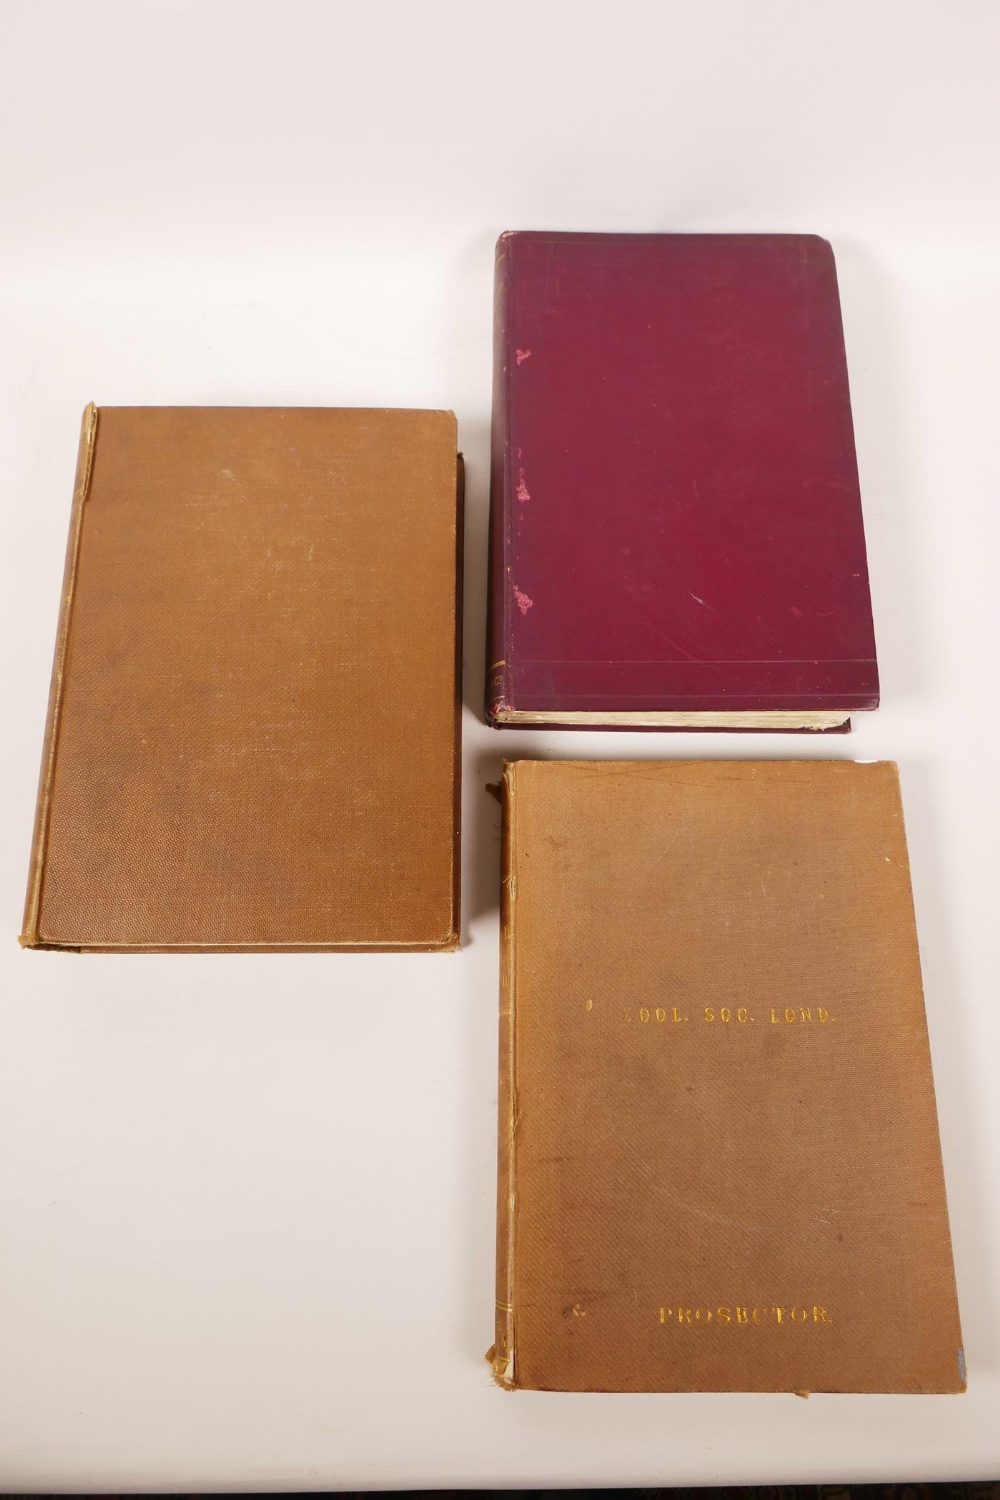 Lot 27 - Sir Joseph Prestwich (1812-1896), Collected Papers on some Controversial Questions of Geology',